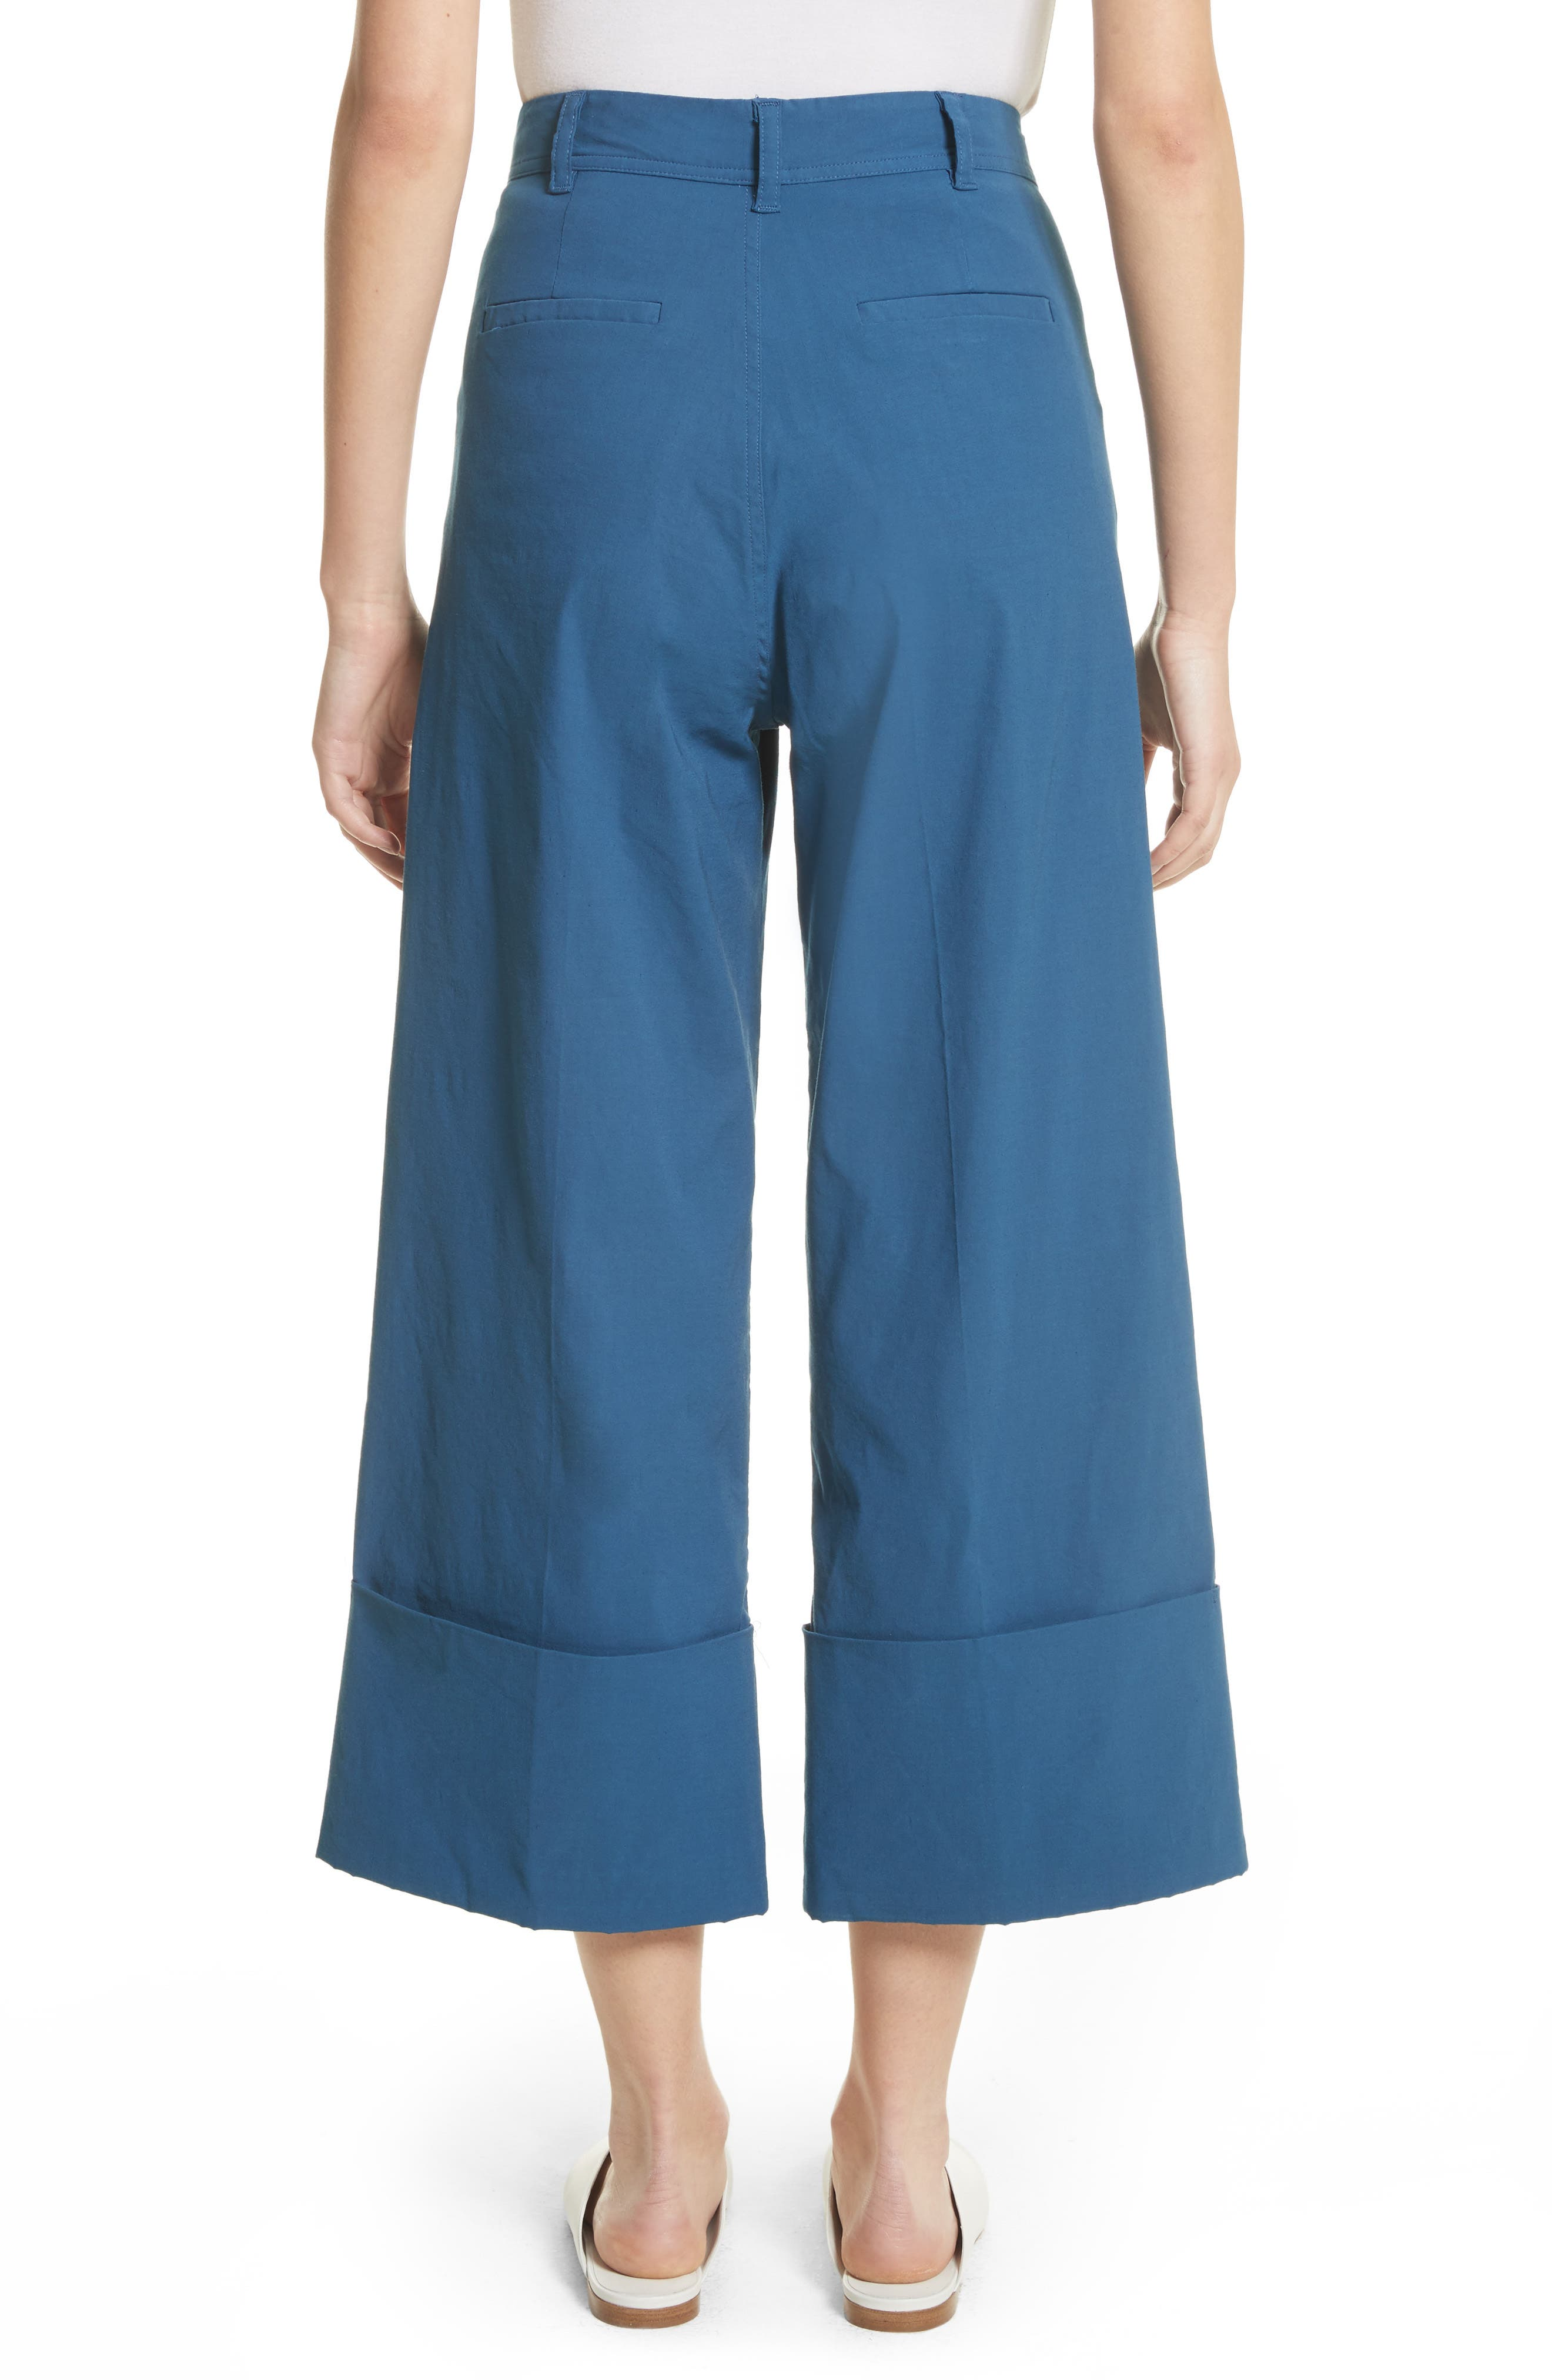 Winona Cuff Wide Leg Pants,                             Alternate thumbnail 2, color,                             400